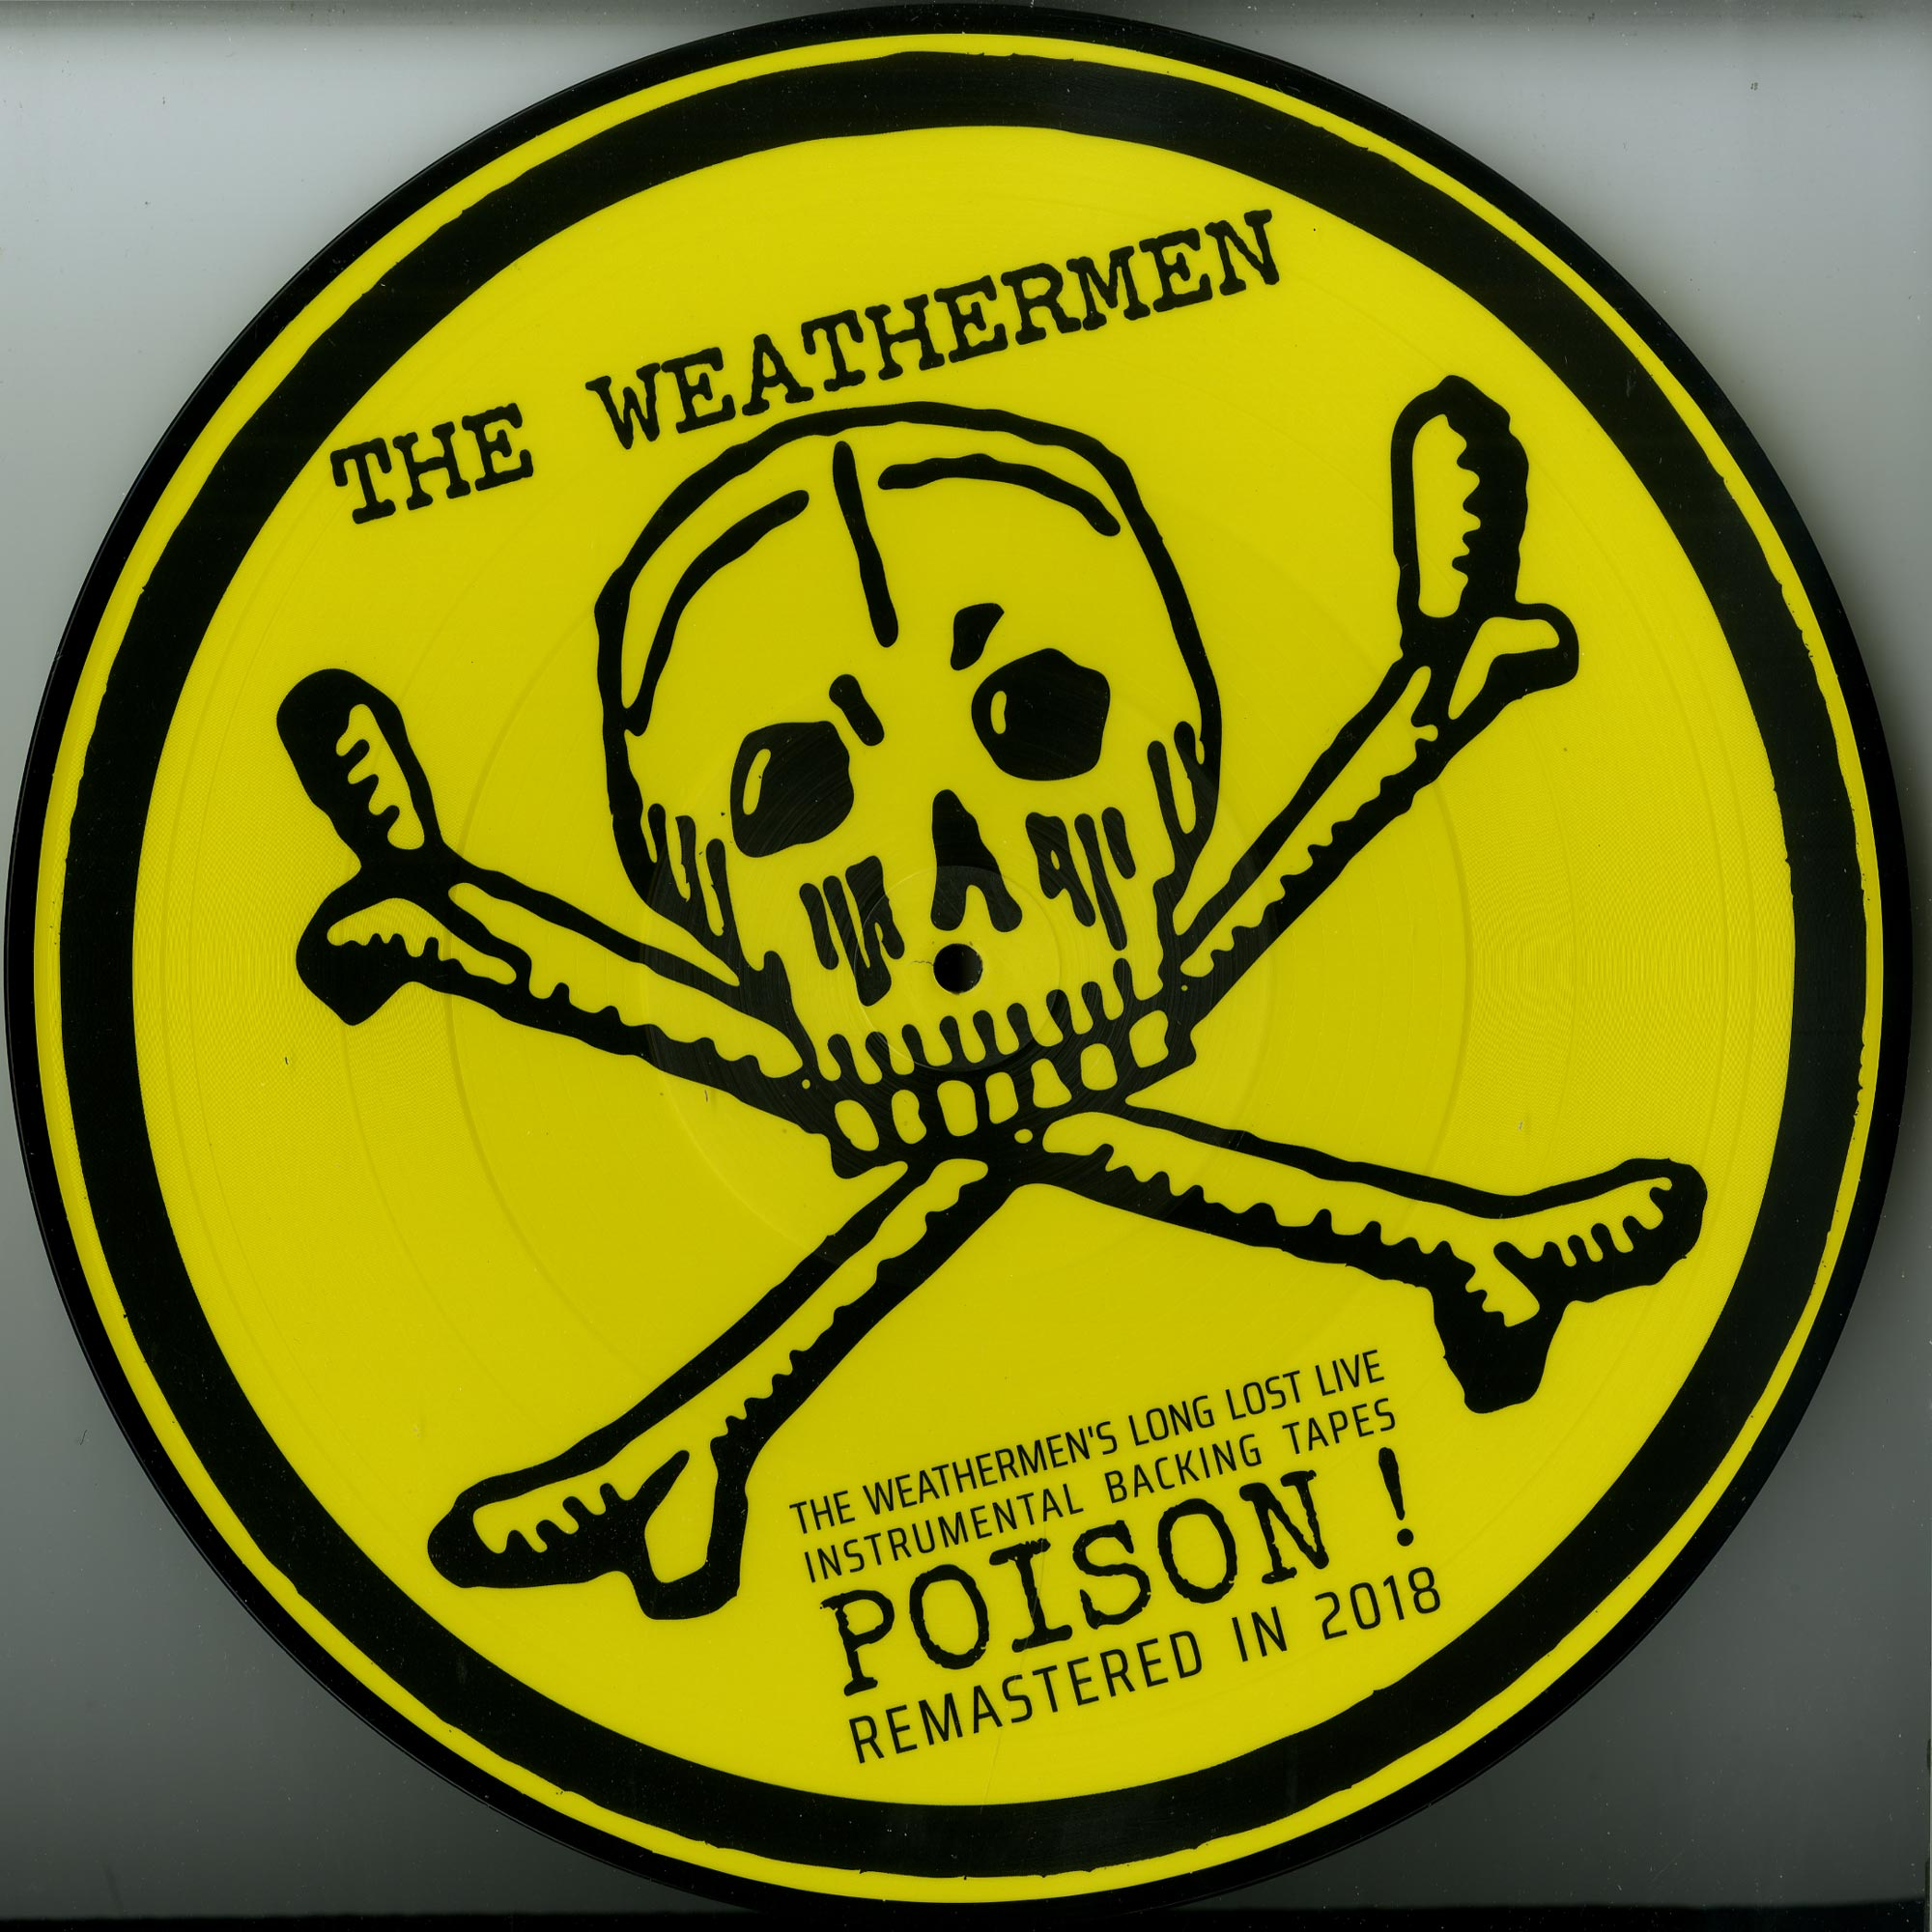 The Weathermen - LONG LOST LIVE INSTRUMENTAL BACKING TAPES: POISON!